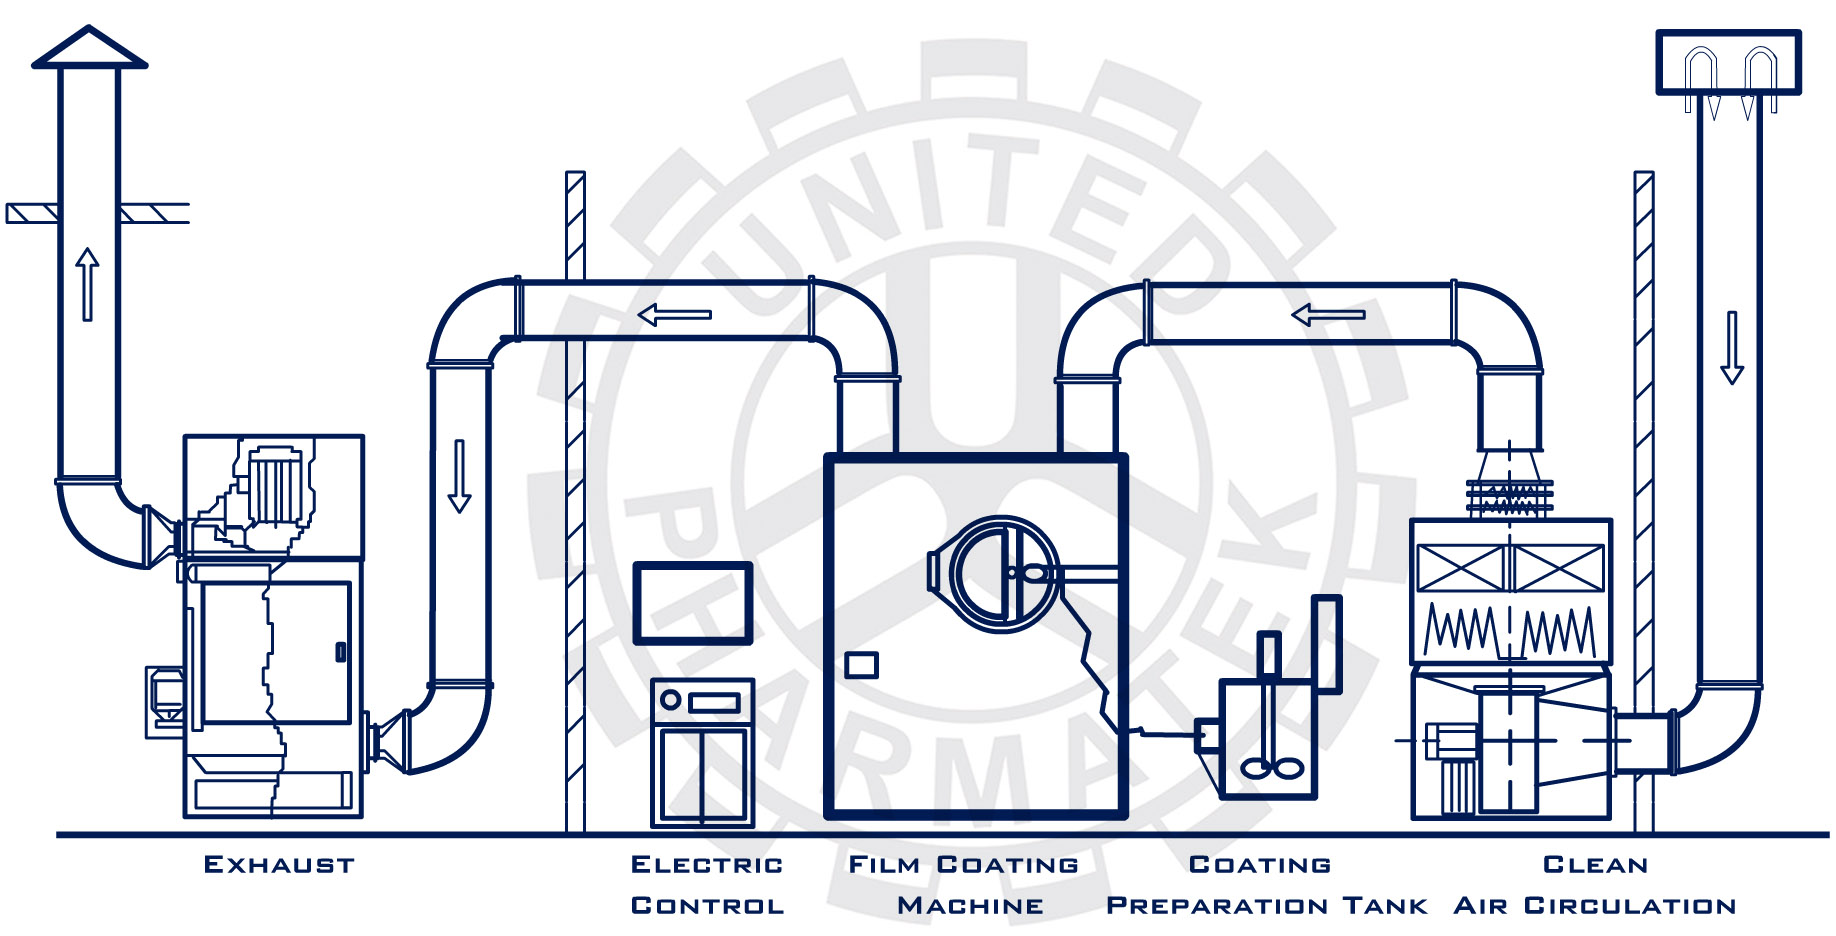 Film Coating Machines Diagram